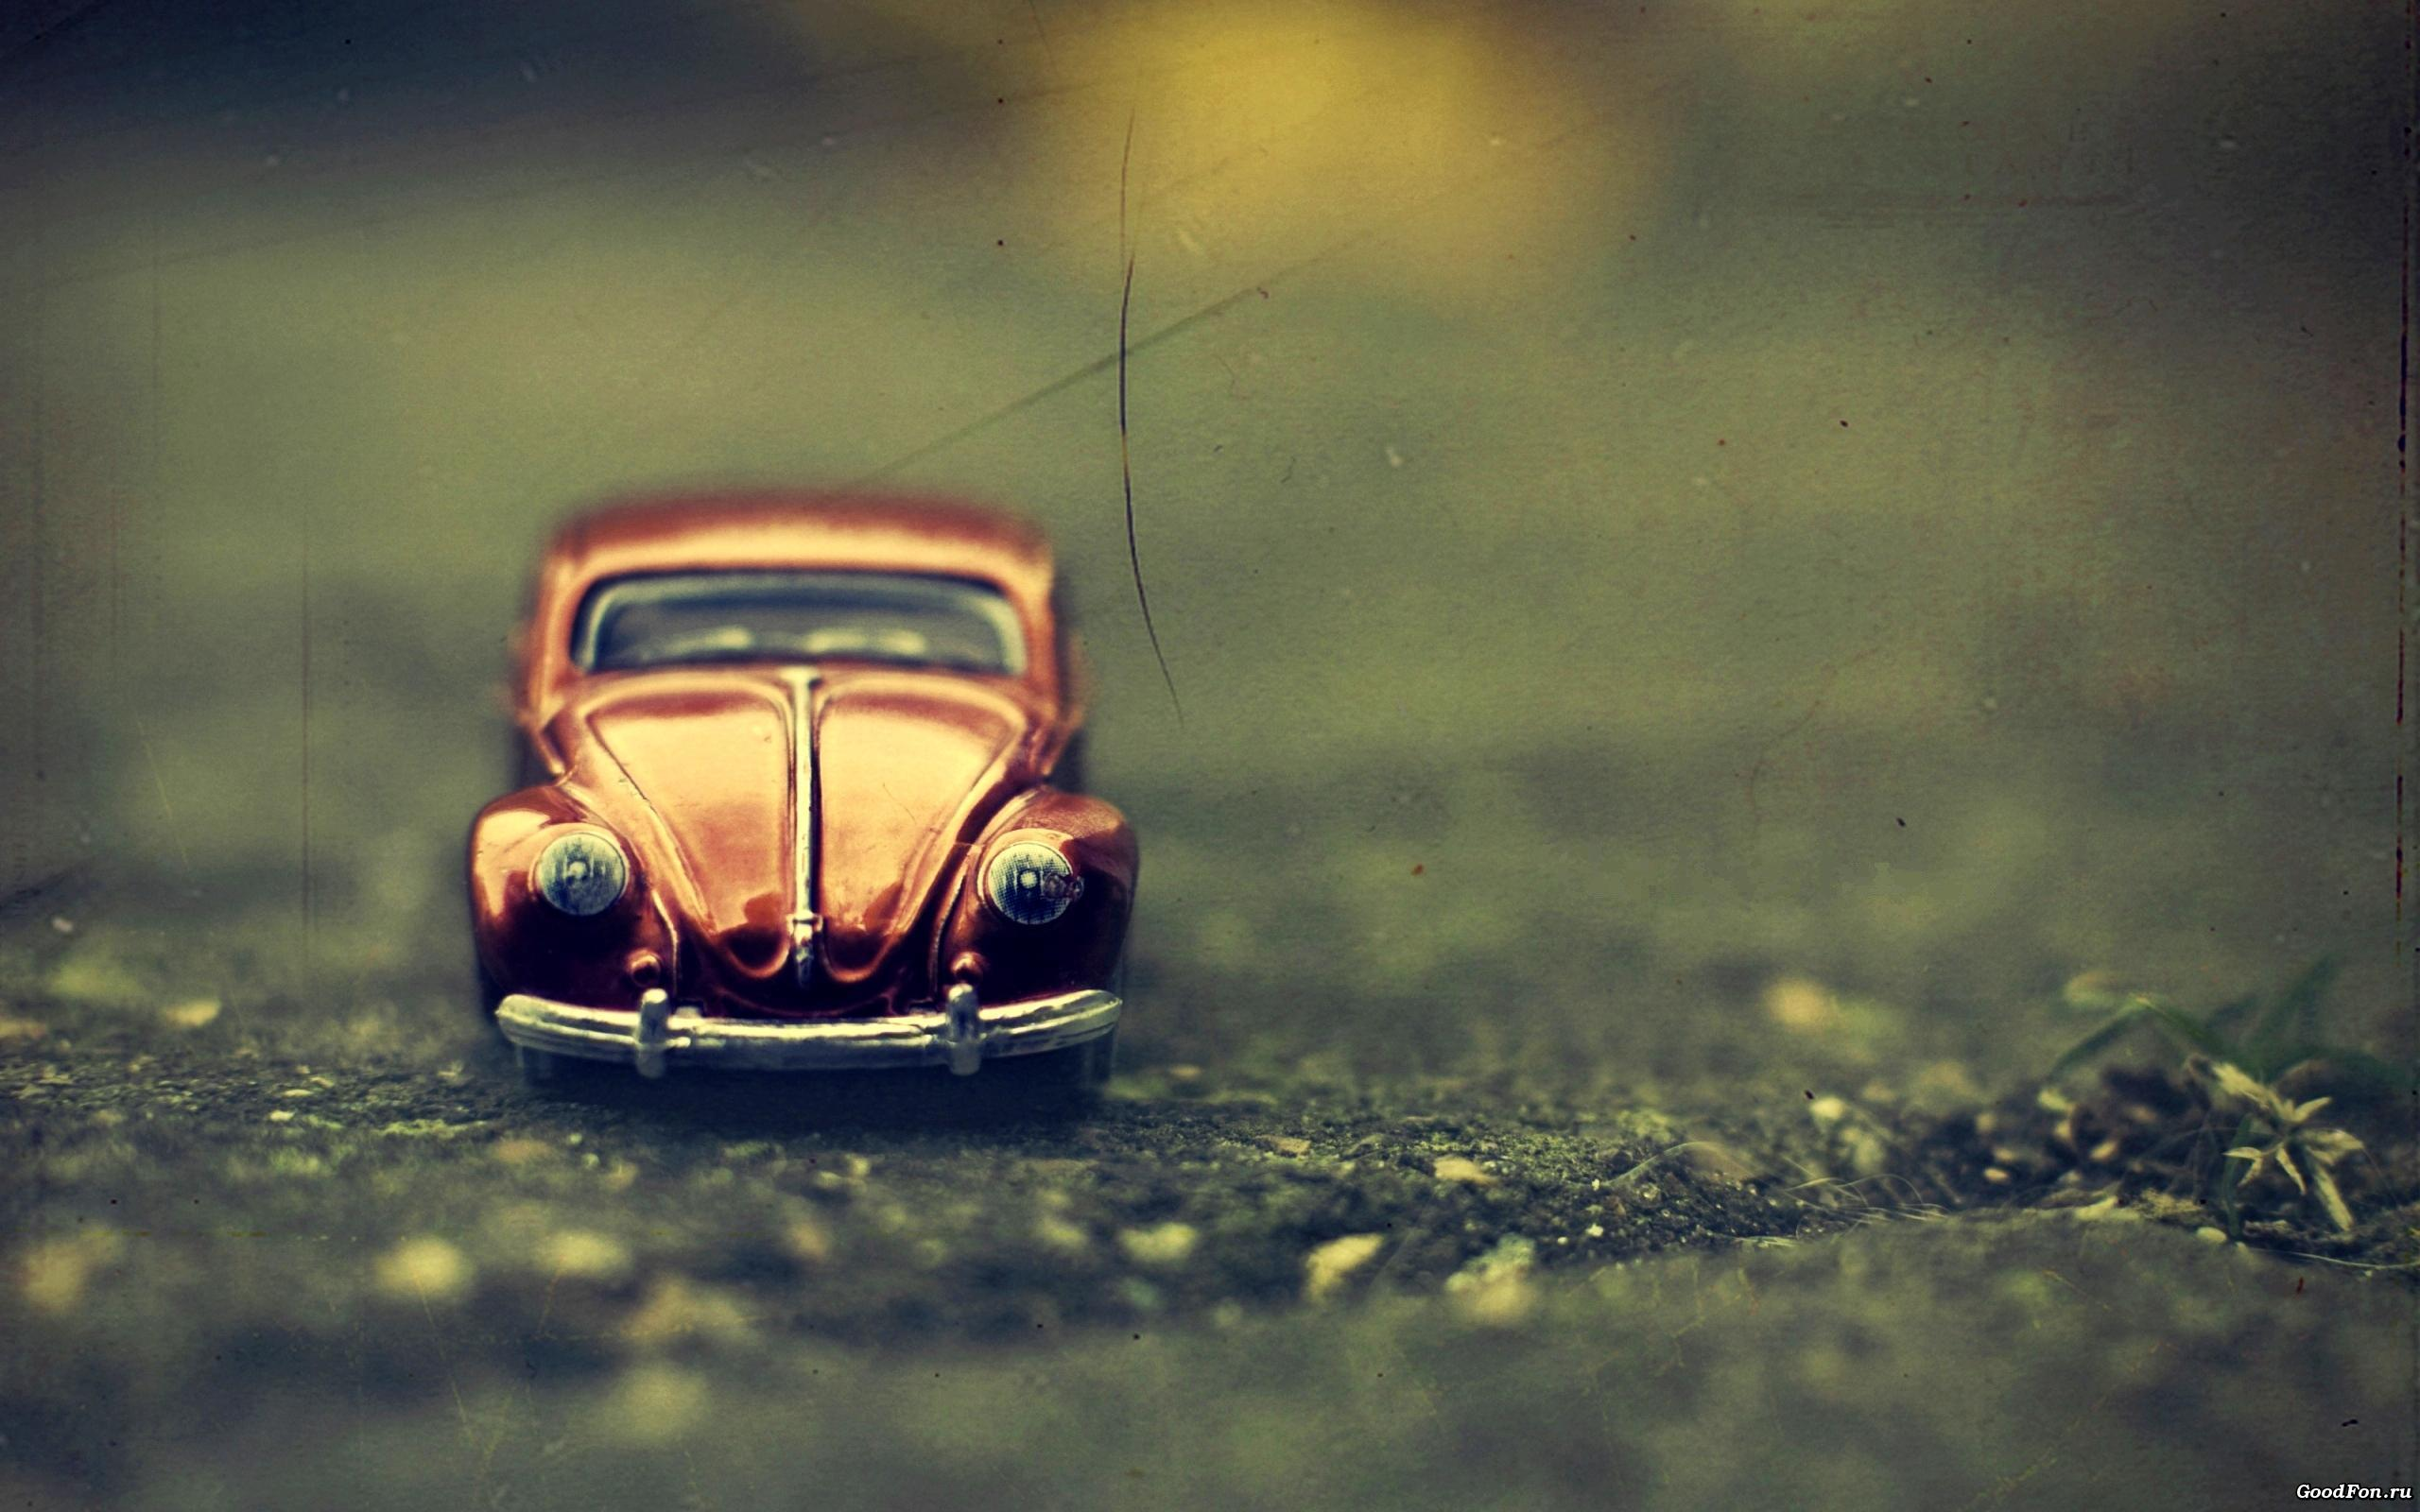 volkswagen beetle toy cars HD Wallpaper